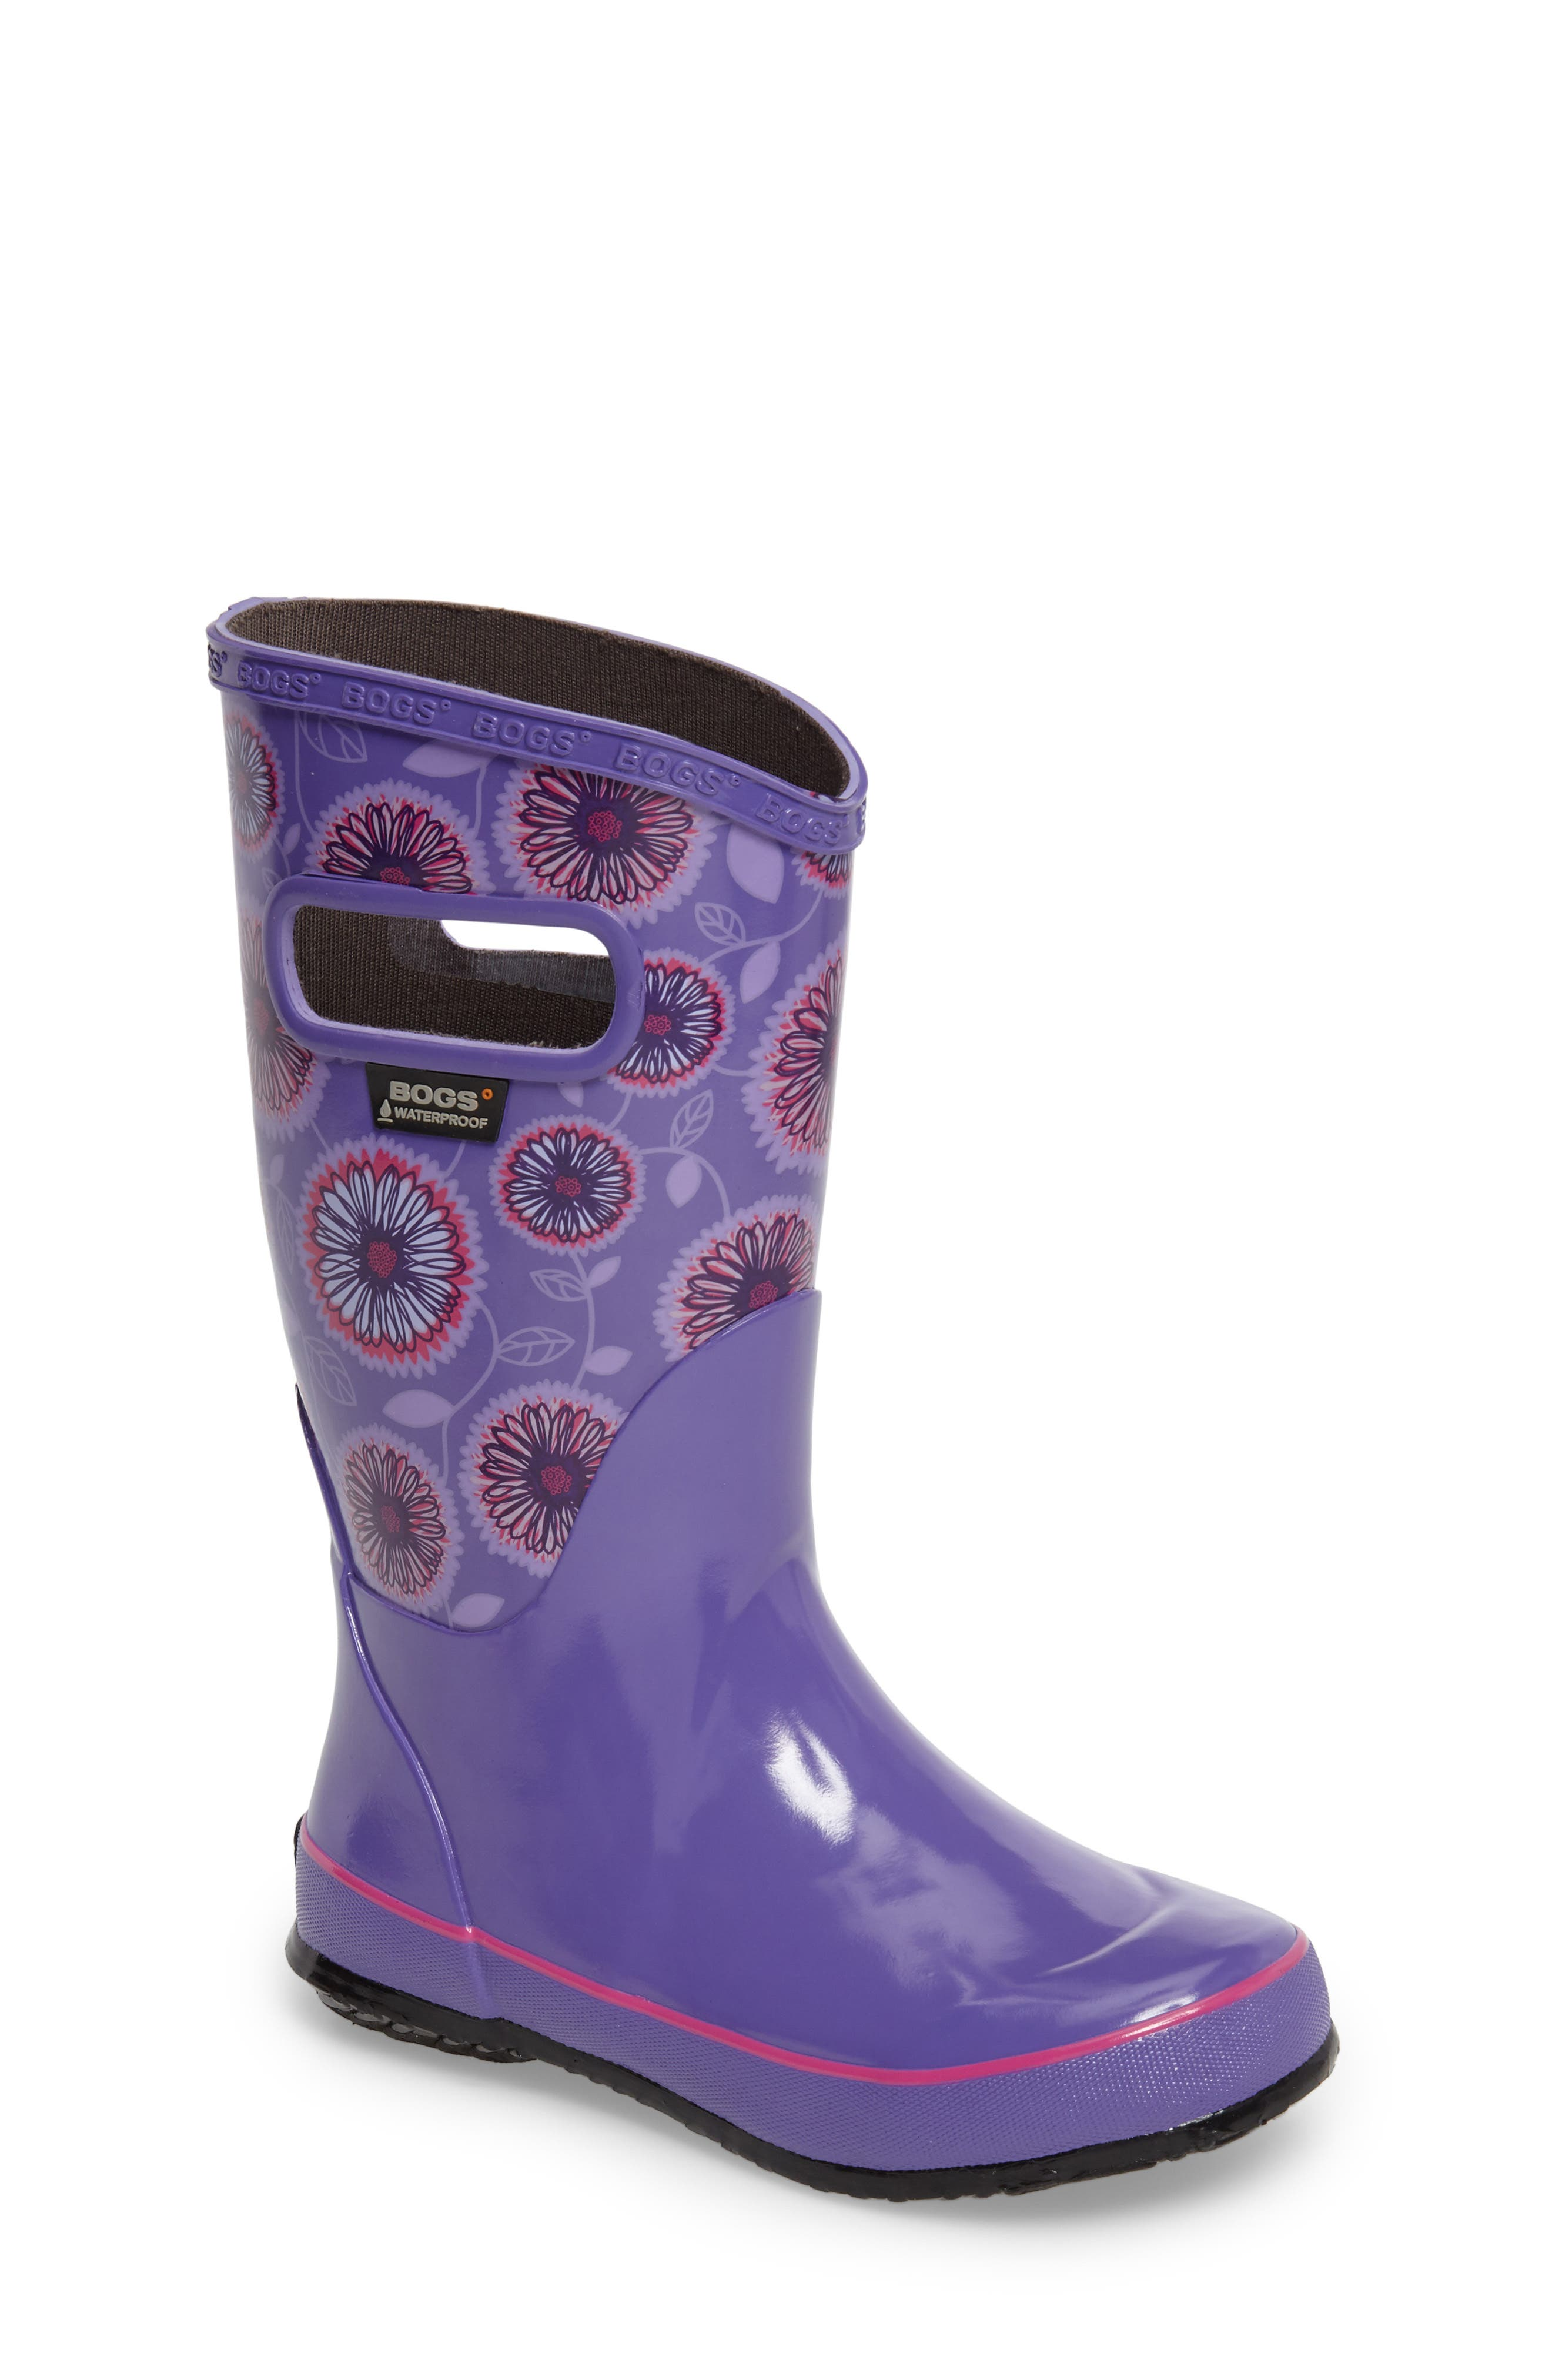 Main Image - Bogs Wildflowers Rubber Rain Boot (Toddler, Little Kid & Big Kid)